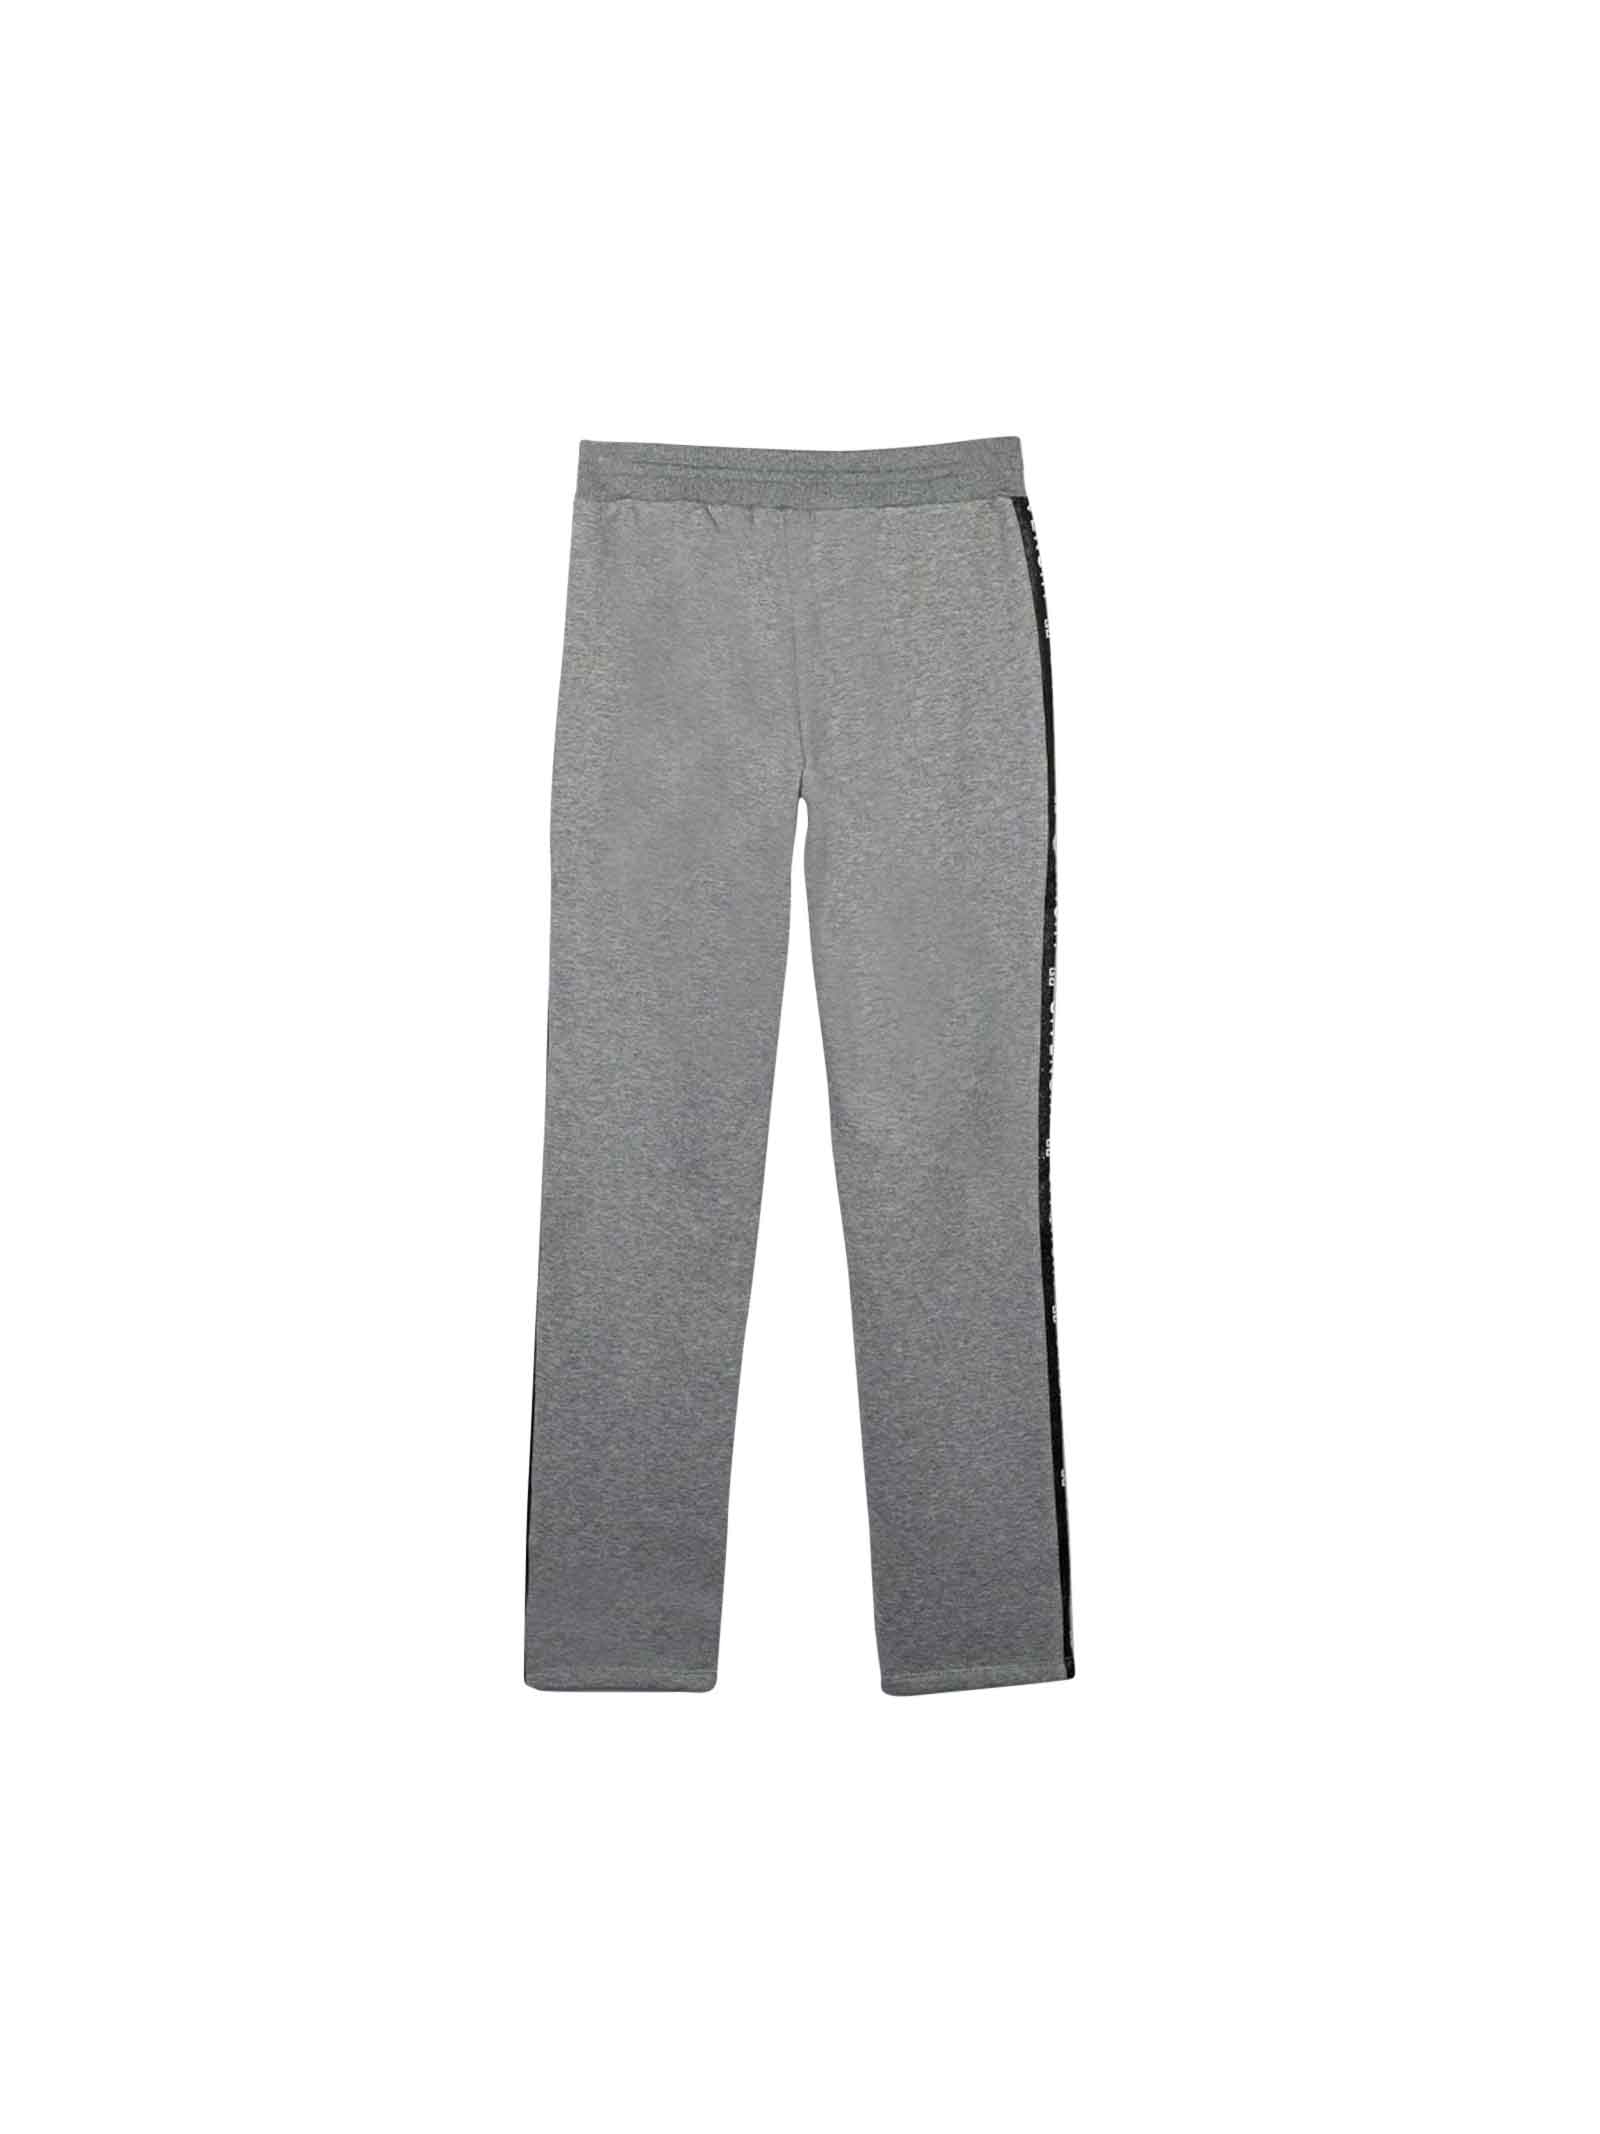 GRAY GIVENCHY KIDS TEEN TROUSERS  Givenchy Kids   9   H14061A47T